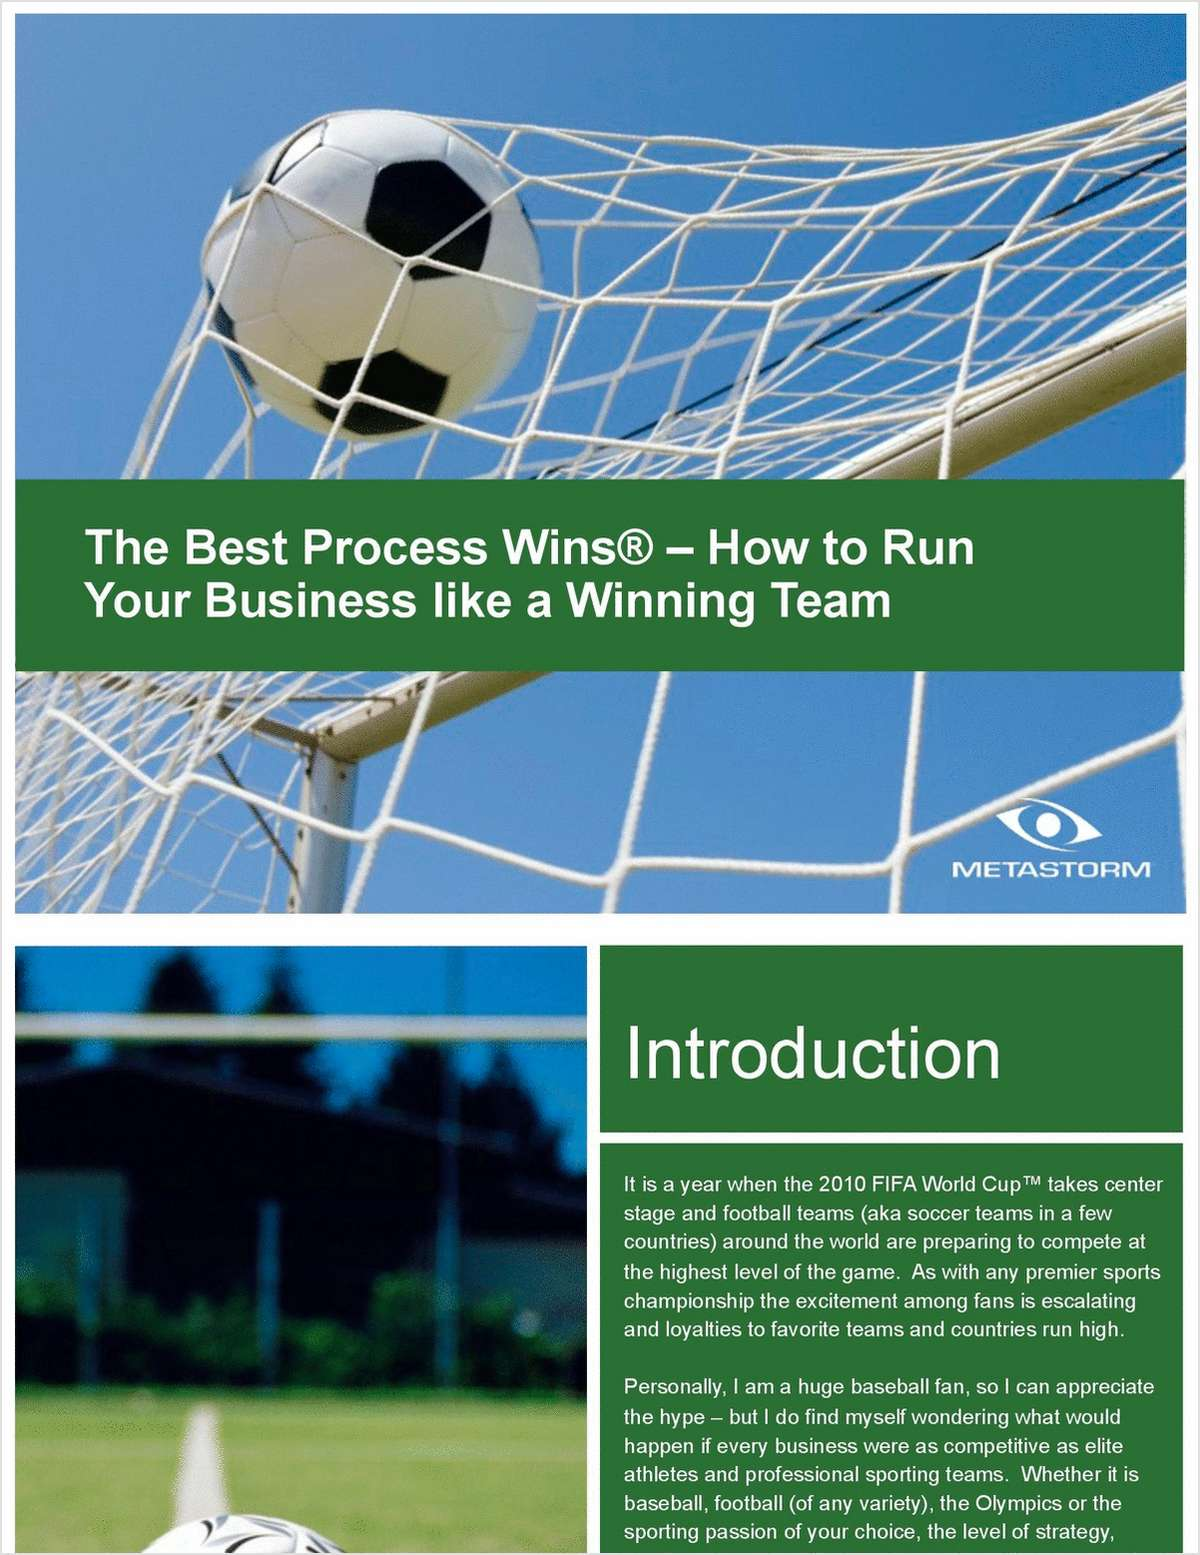 The Best Process Wins® – How to Run Your Business like a Winning Team